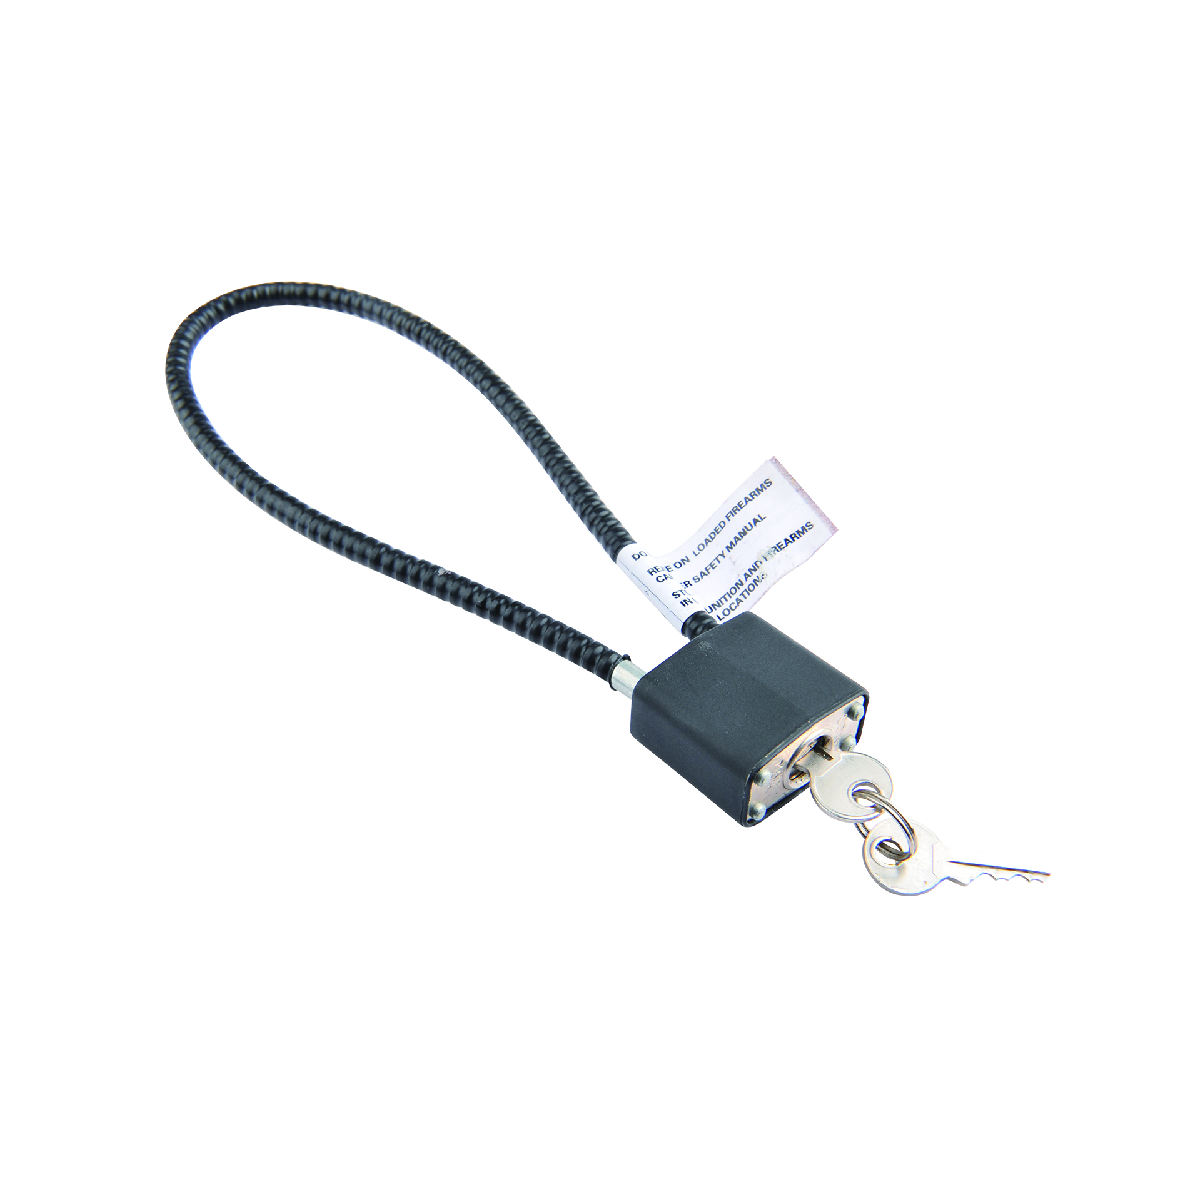 Rifle gun cable lock for guns gun safe